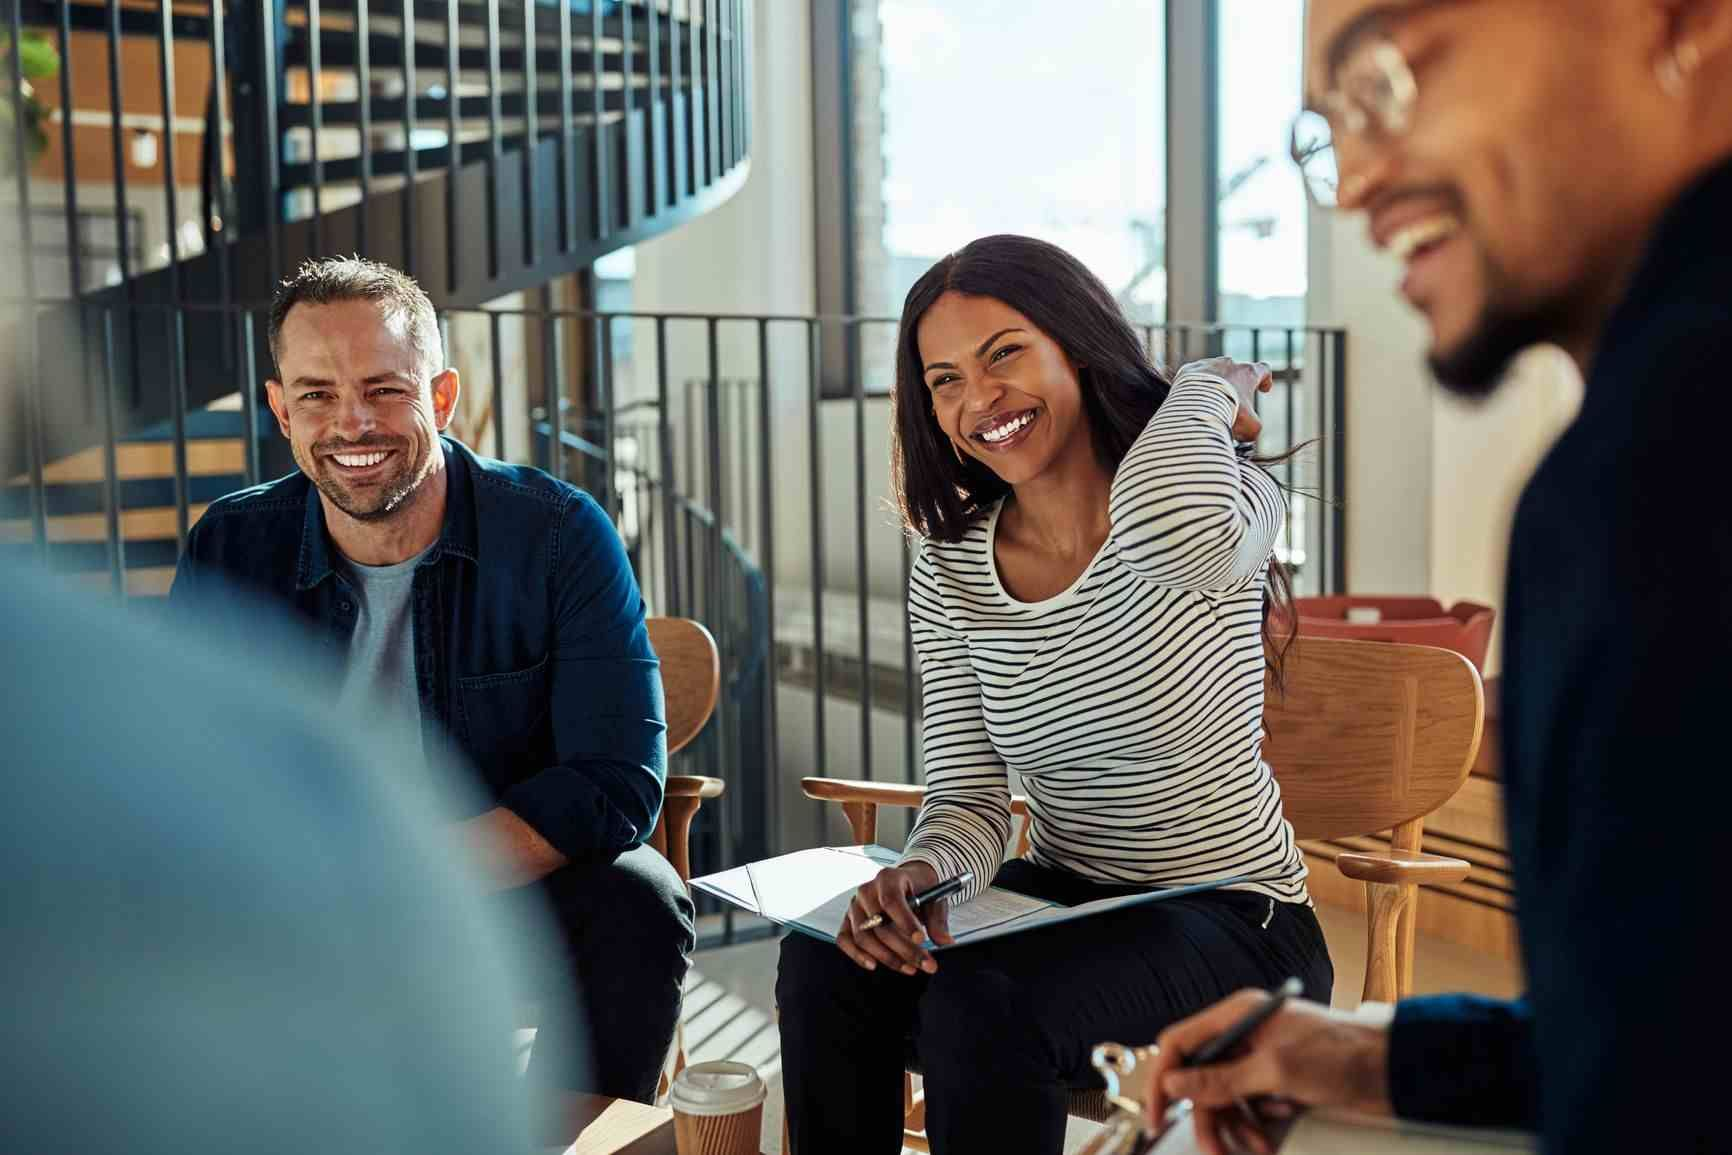 Diverse group of coworkers laugh together at the office